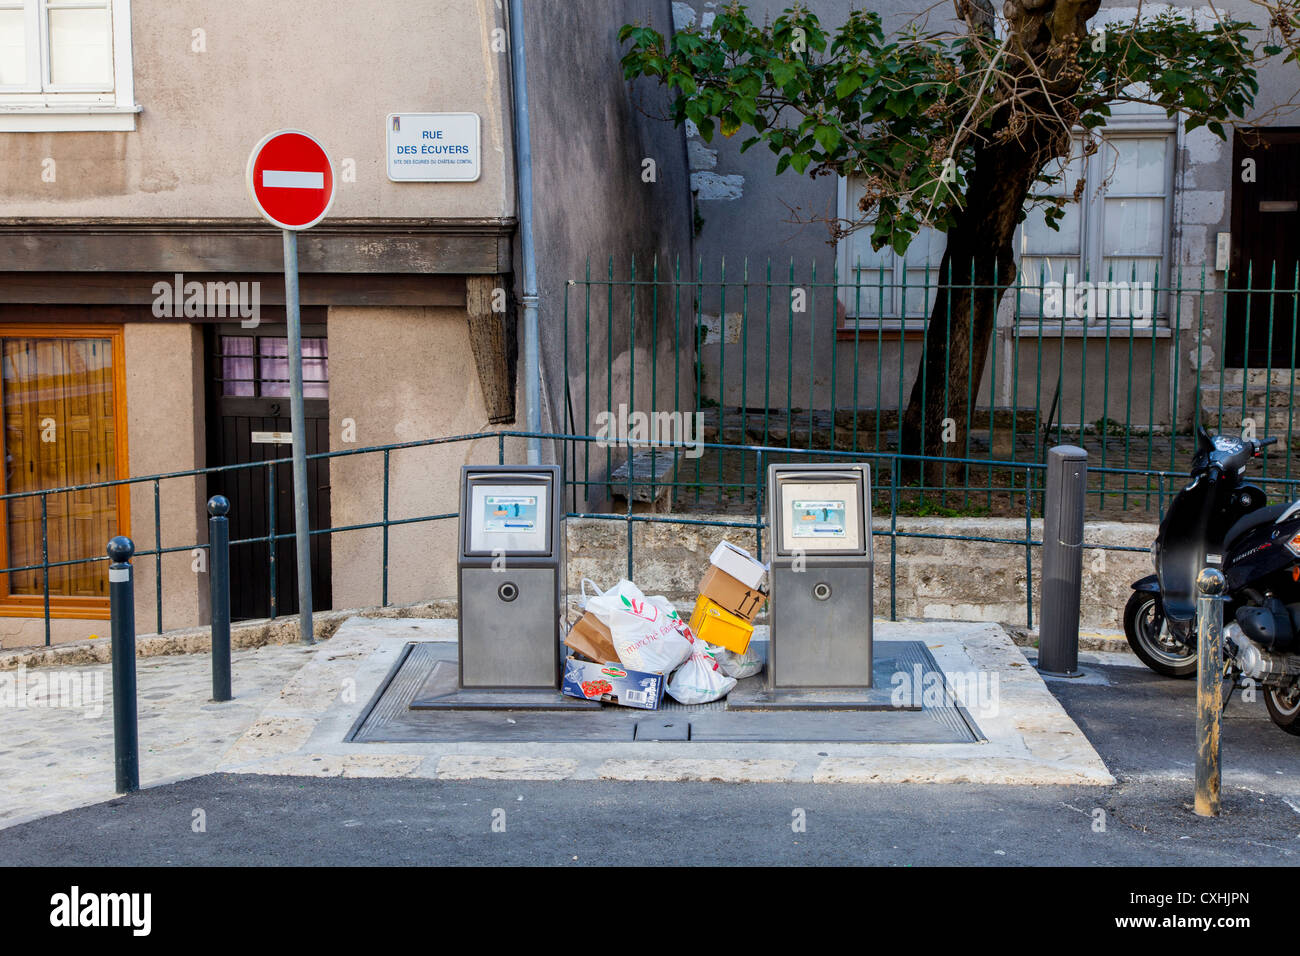 Public waste disposal facility in the centre of Chartres, Loire, France - Stock Image